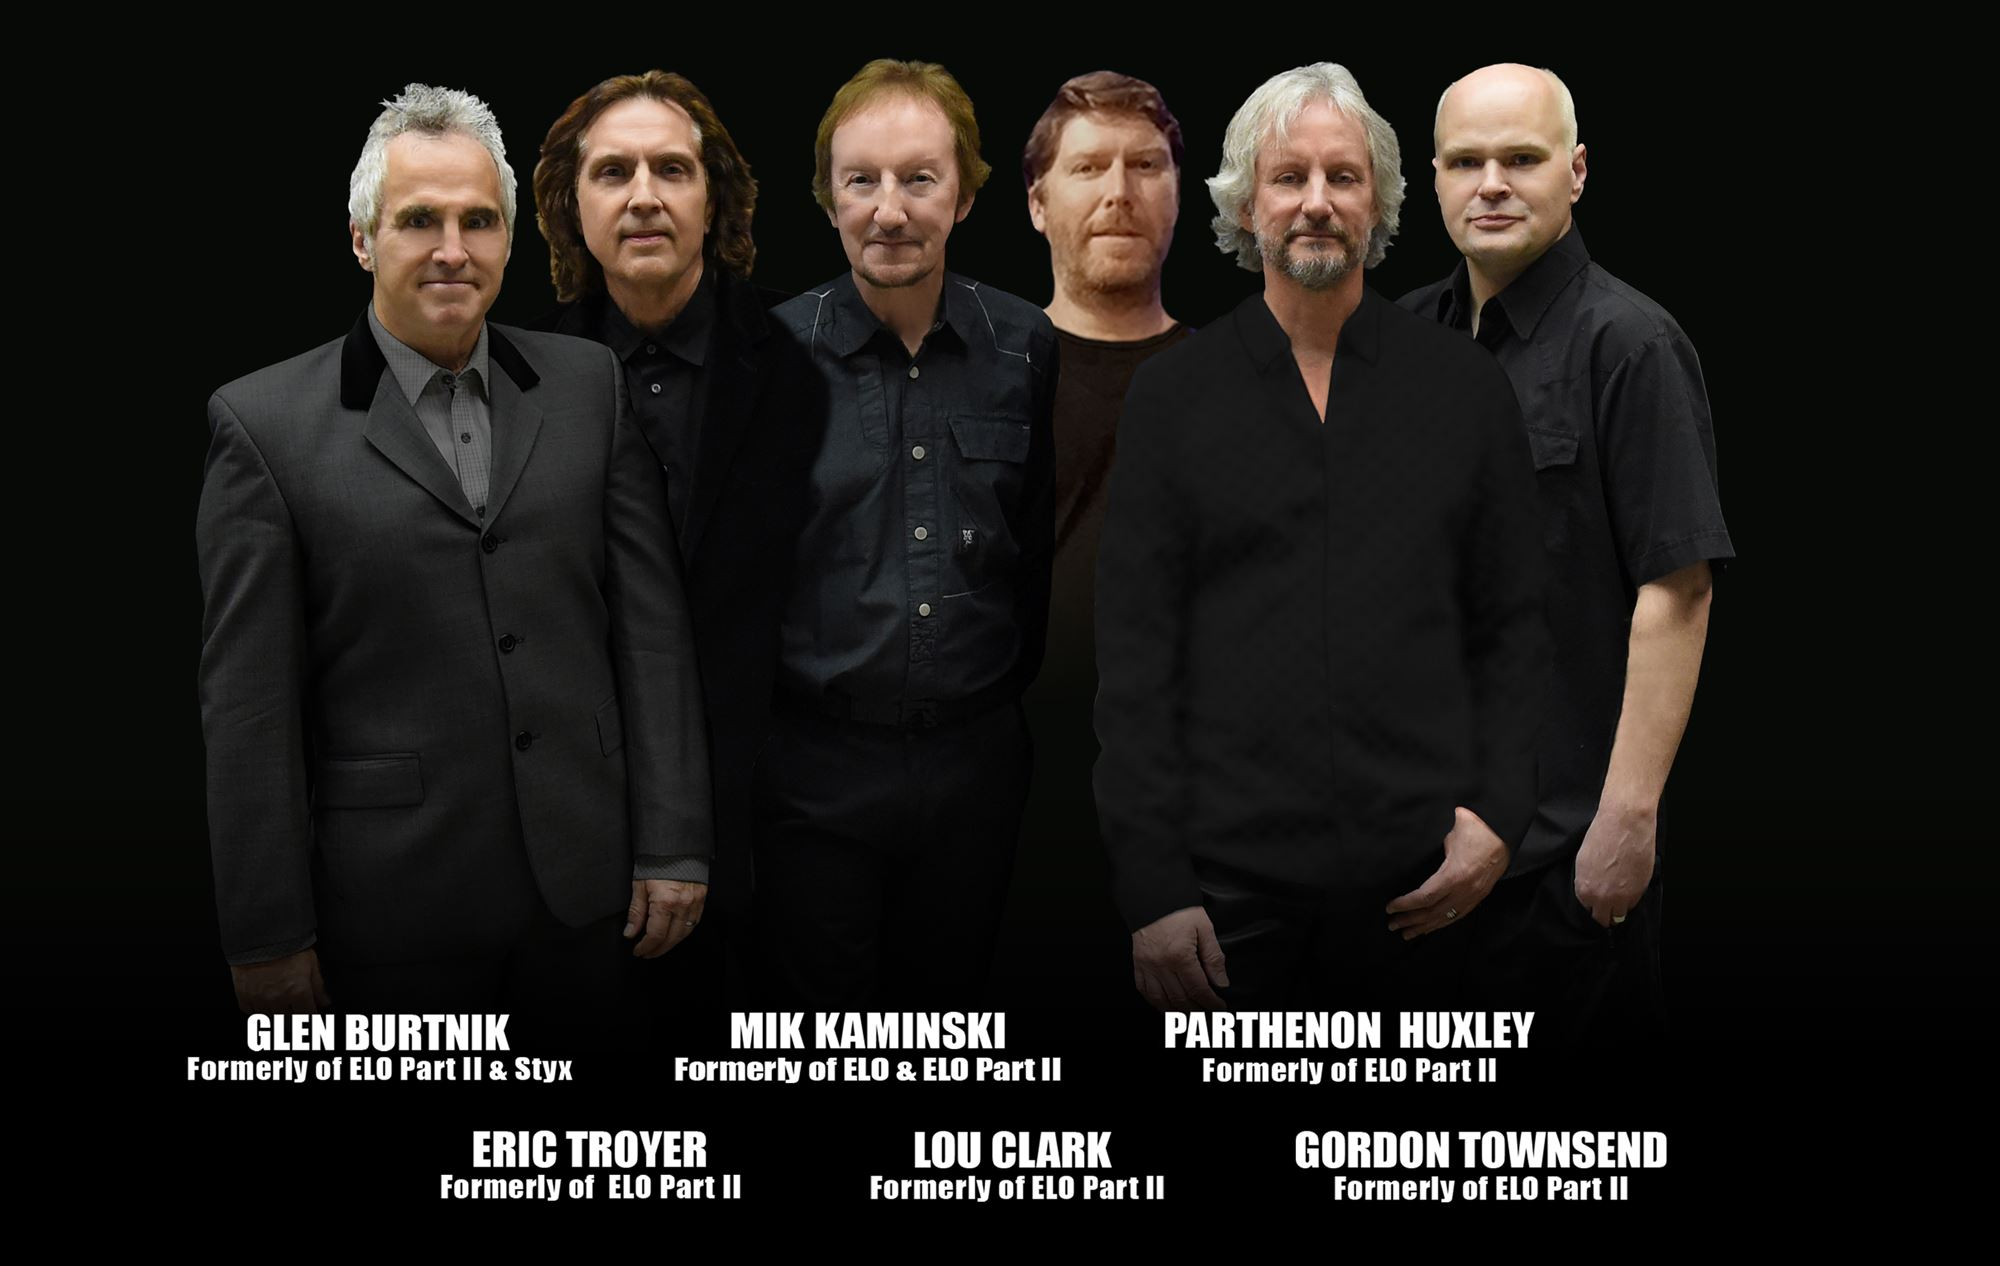 The Orchestra starring former ELO members